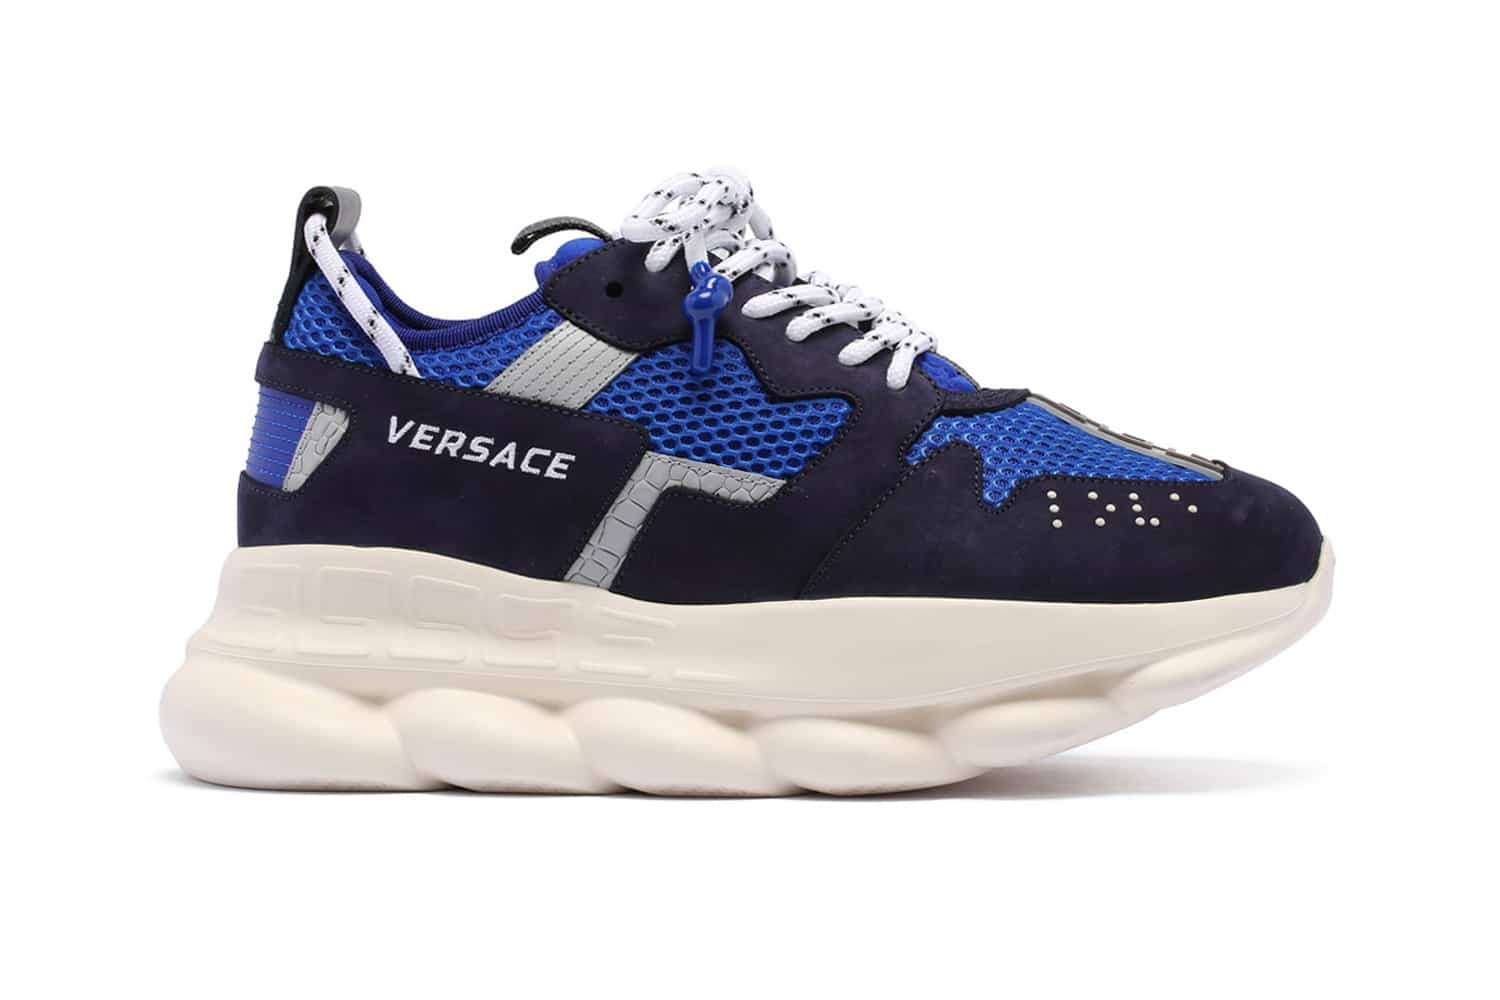 Versace Chain Reaction 2 sneaker is chunky & blauw | MANNENSTYLE